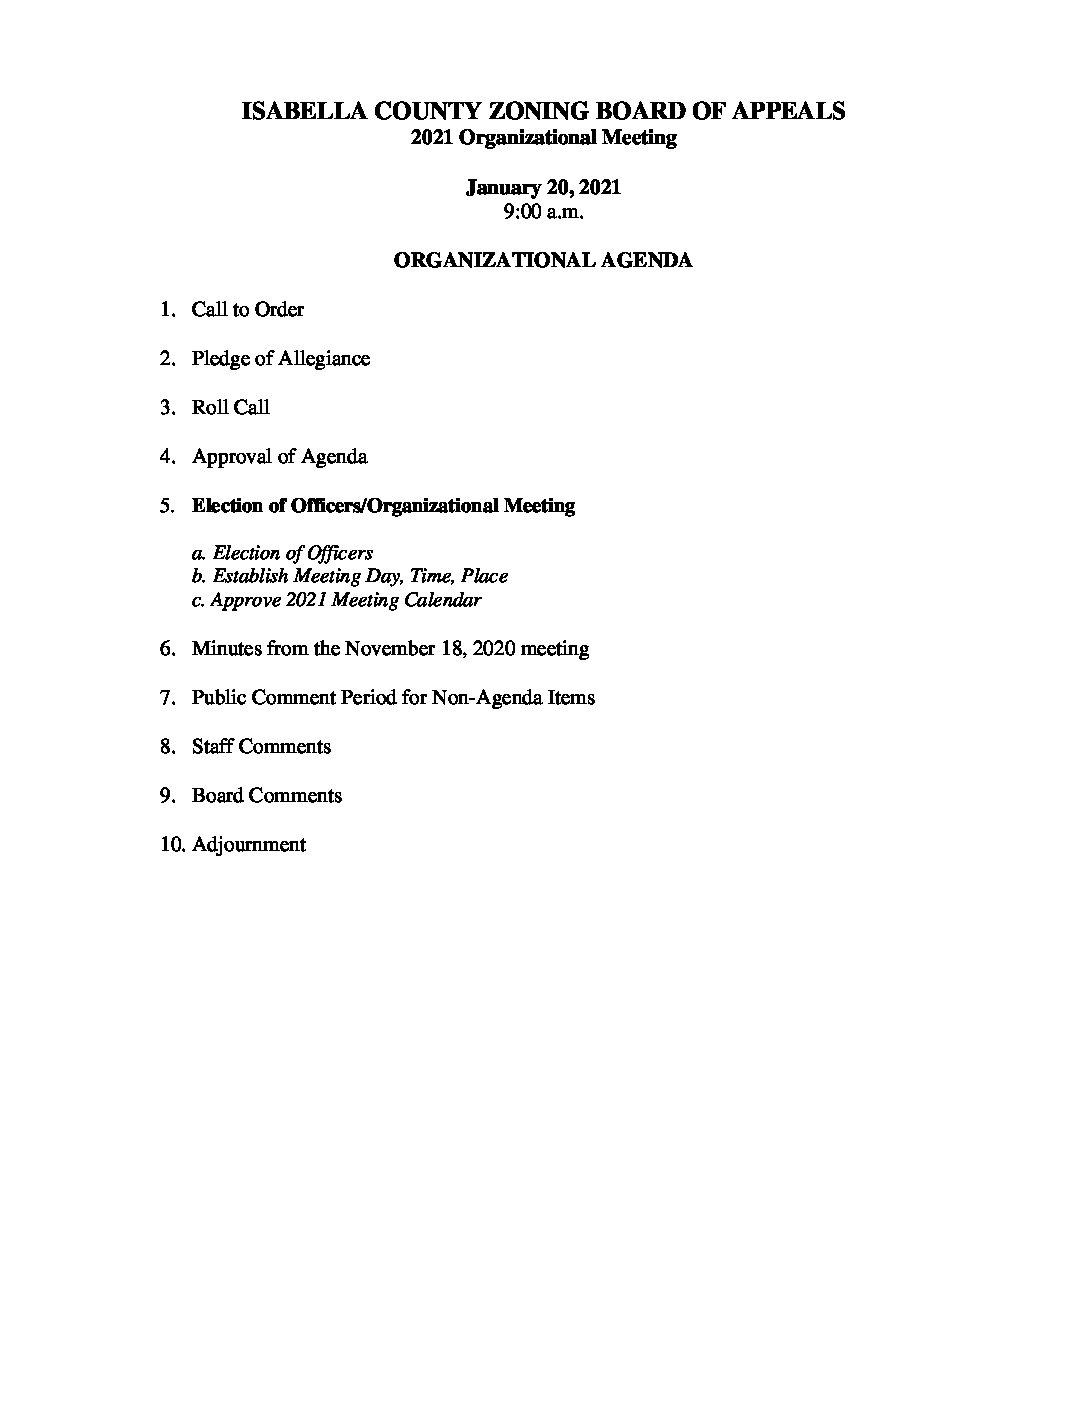 preview image of first page January 20, 2021 Zoning Board of Appeals Agenda